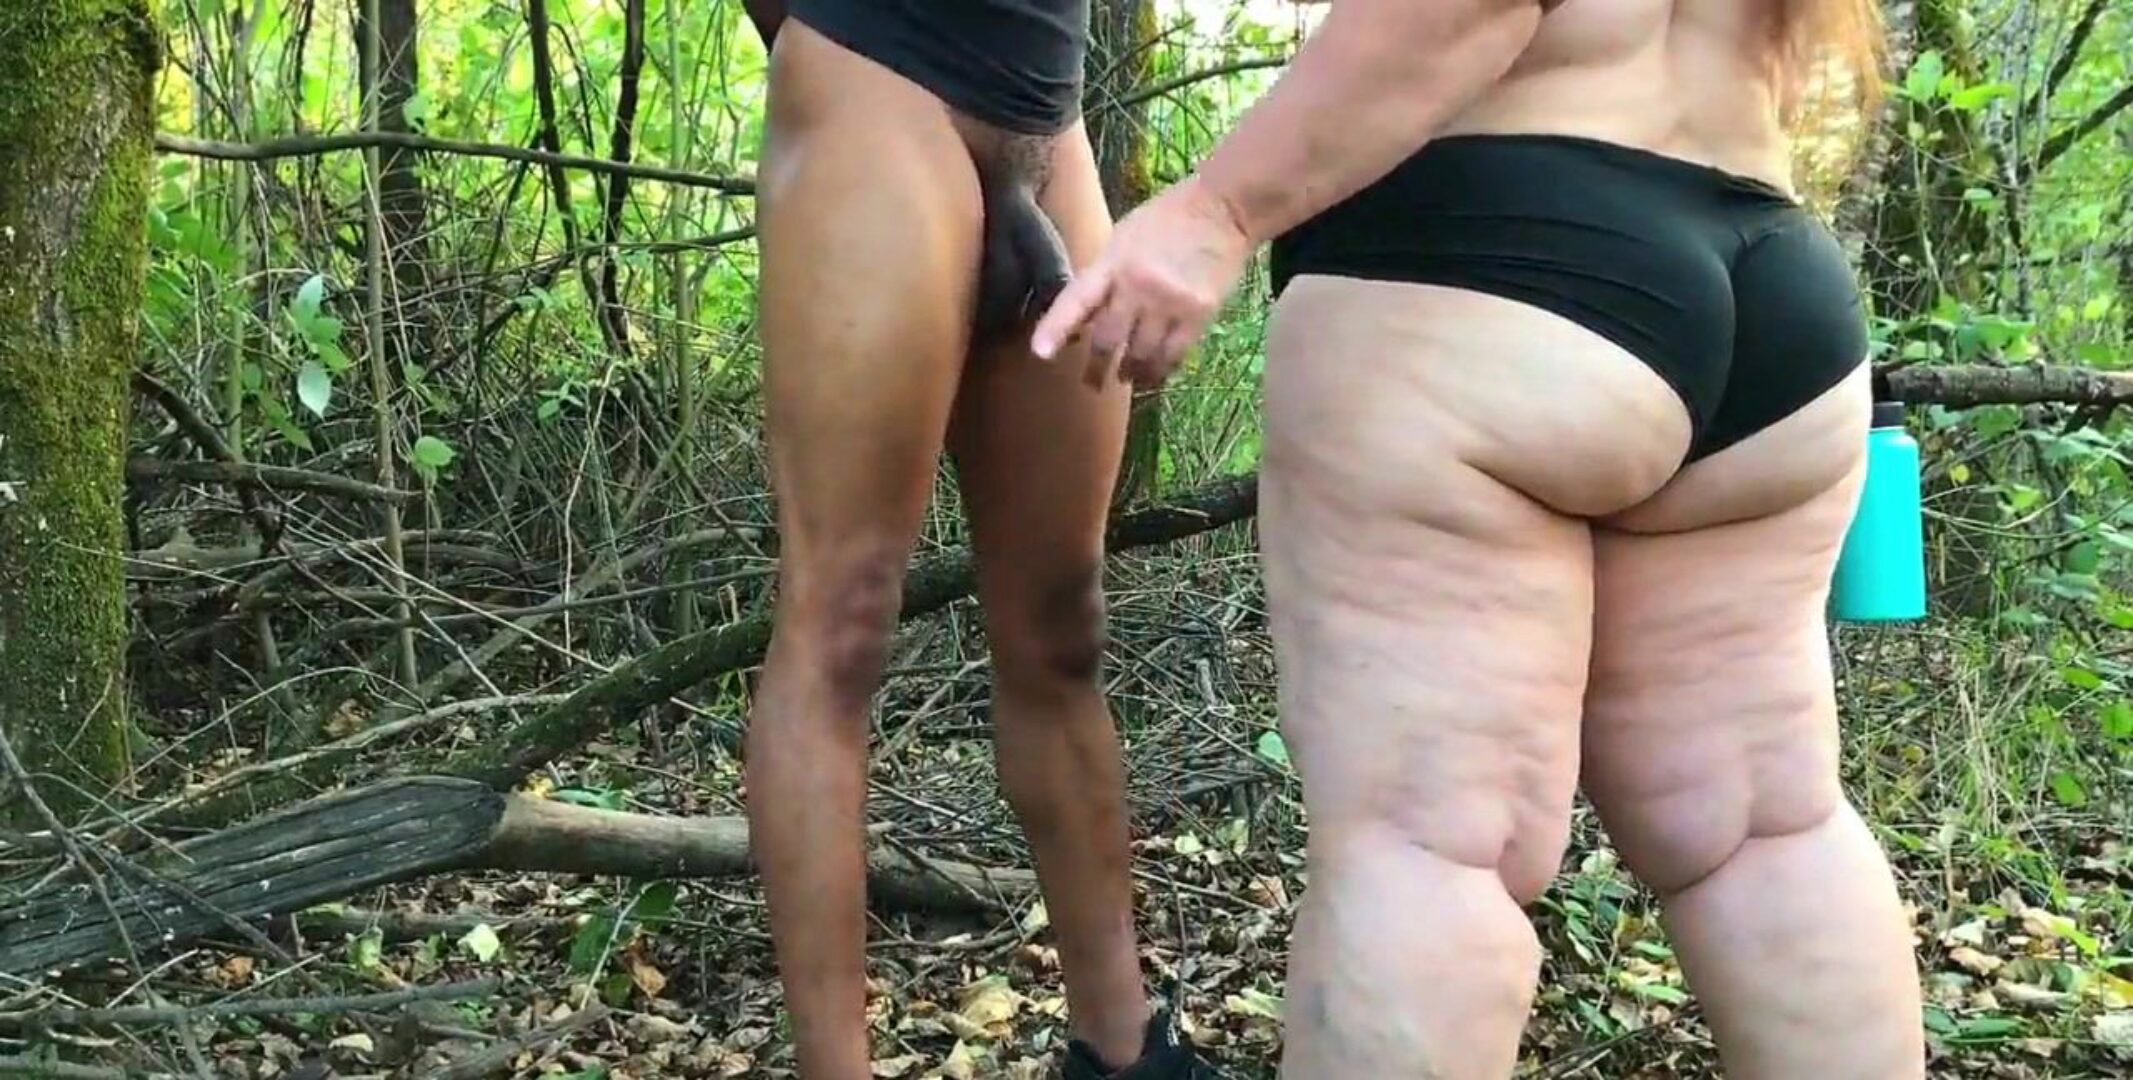 Mature bbw gives deep-throat unloading blow job in the woods